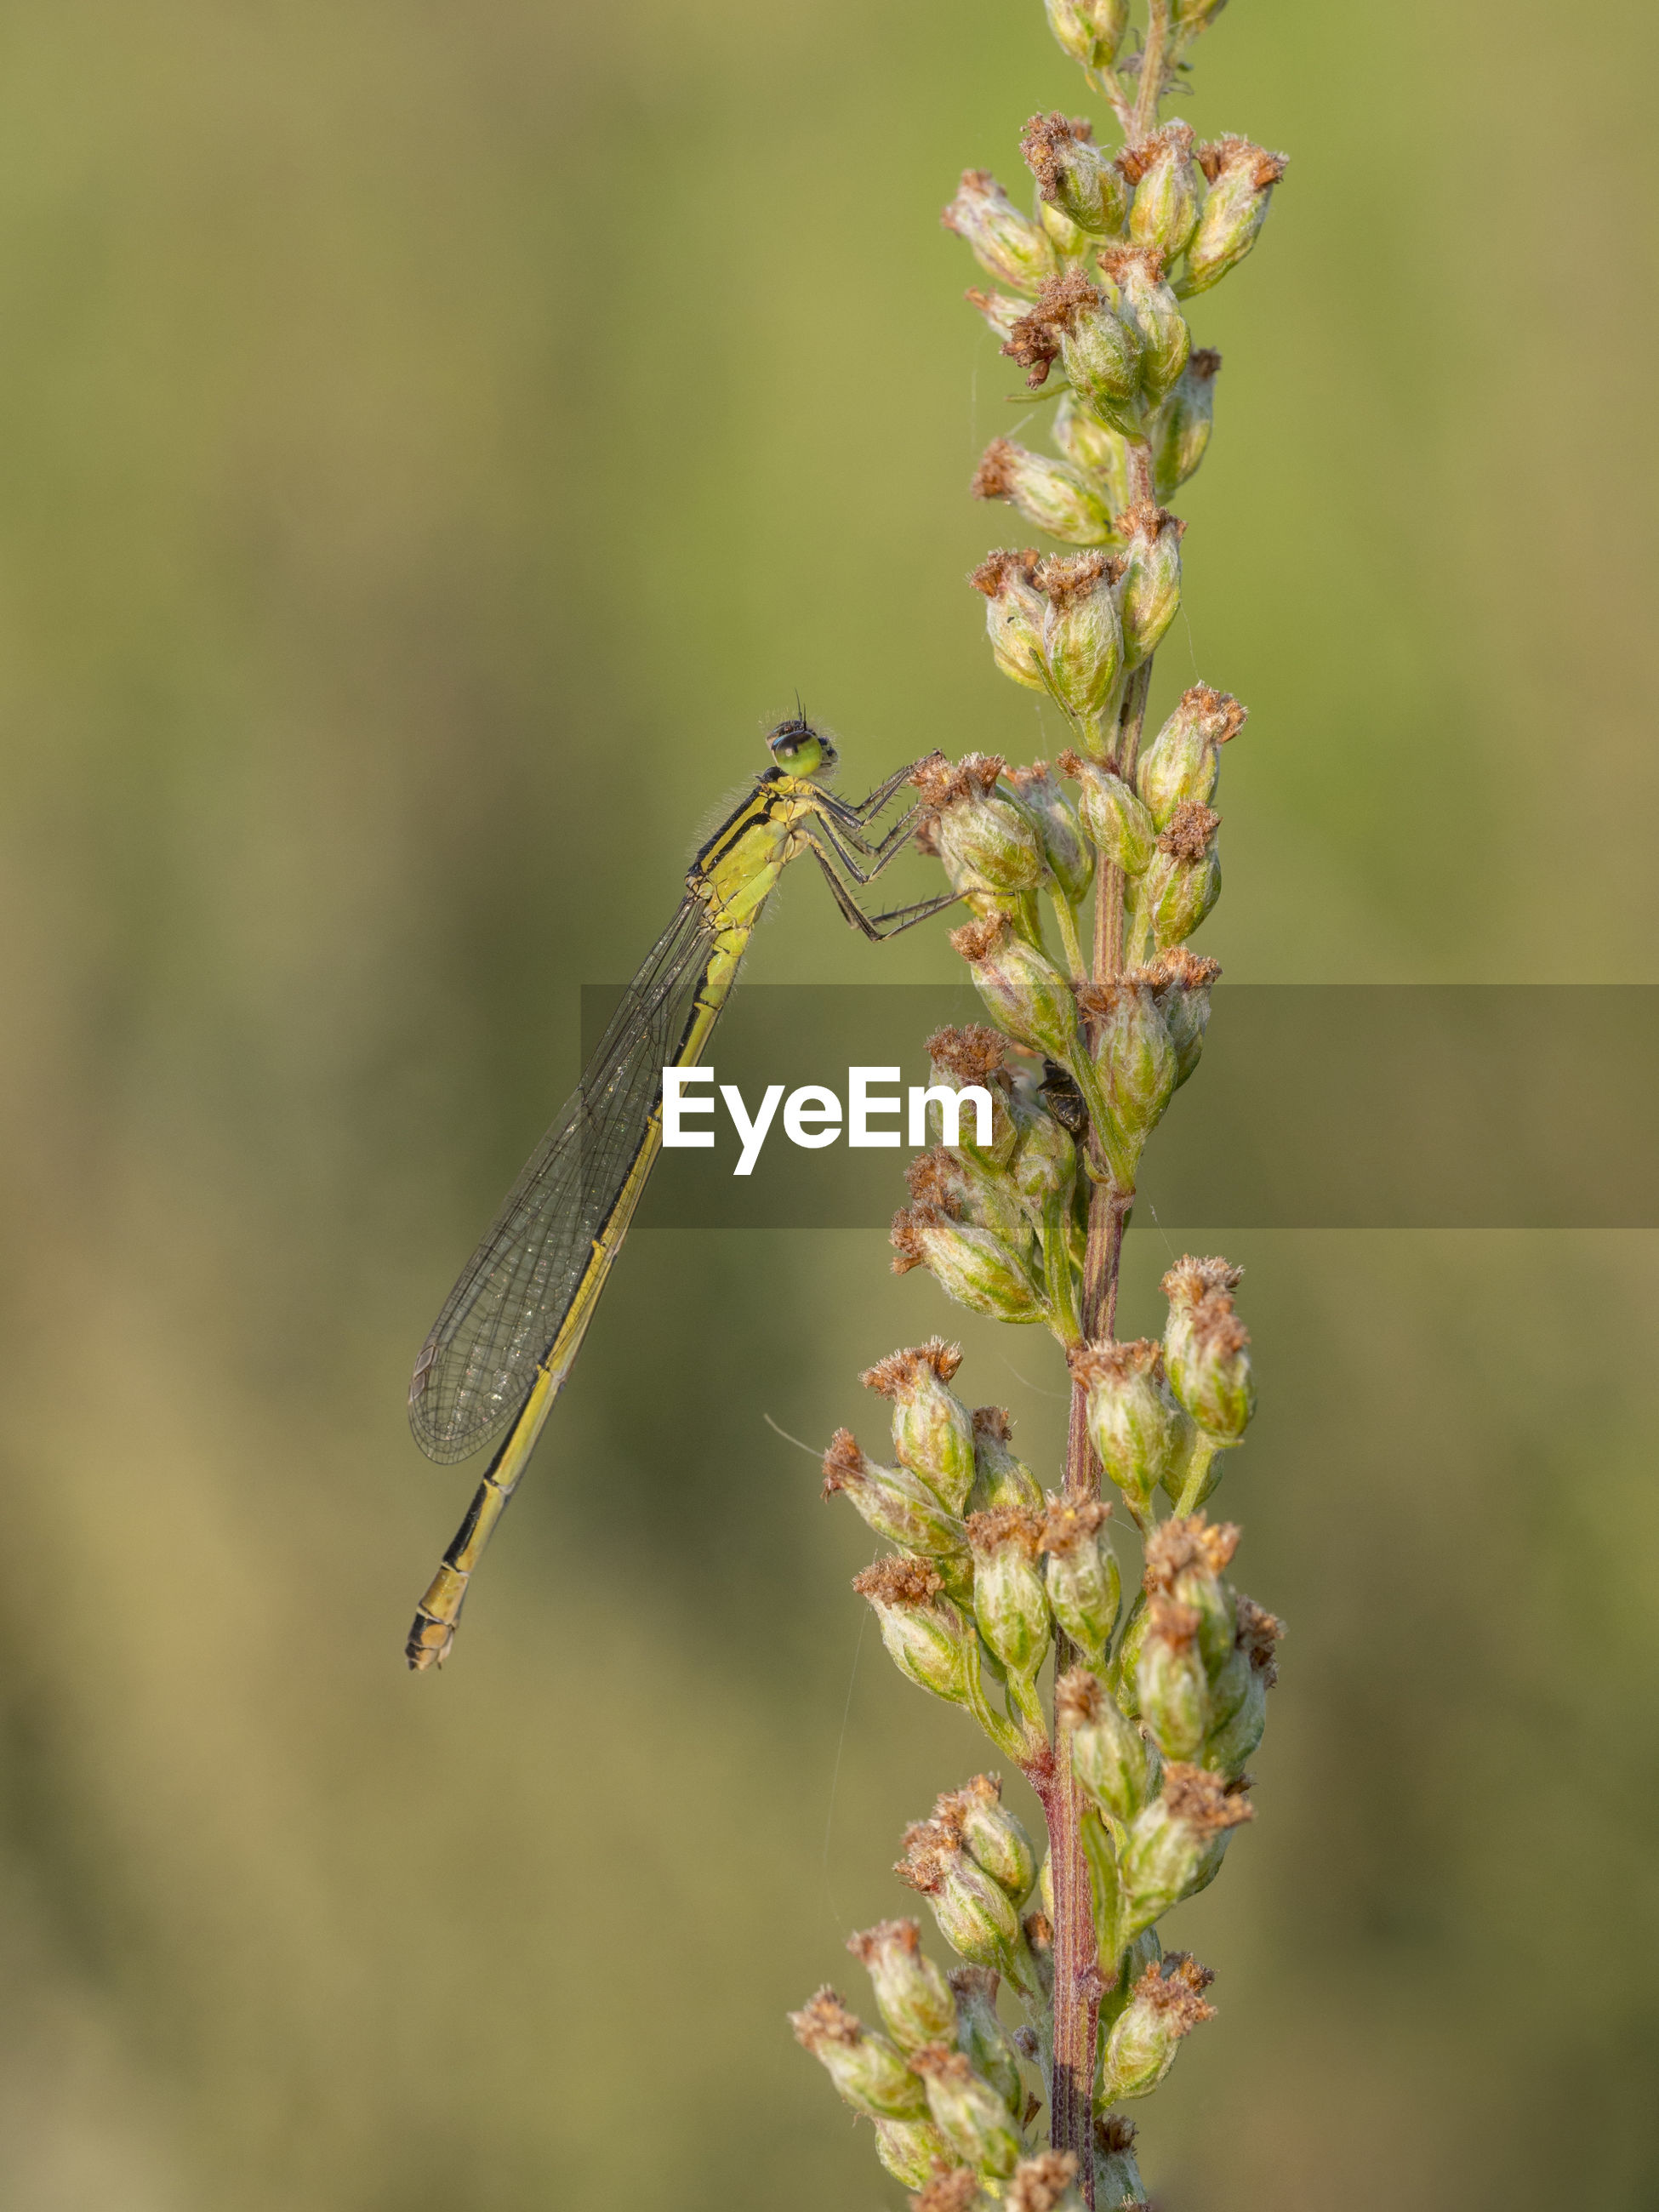 CLOSE-UP OF INSECT ON PLANT OUTDOORS